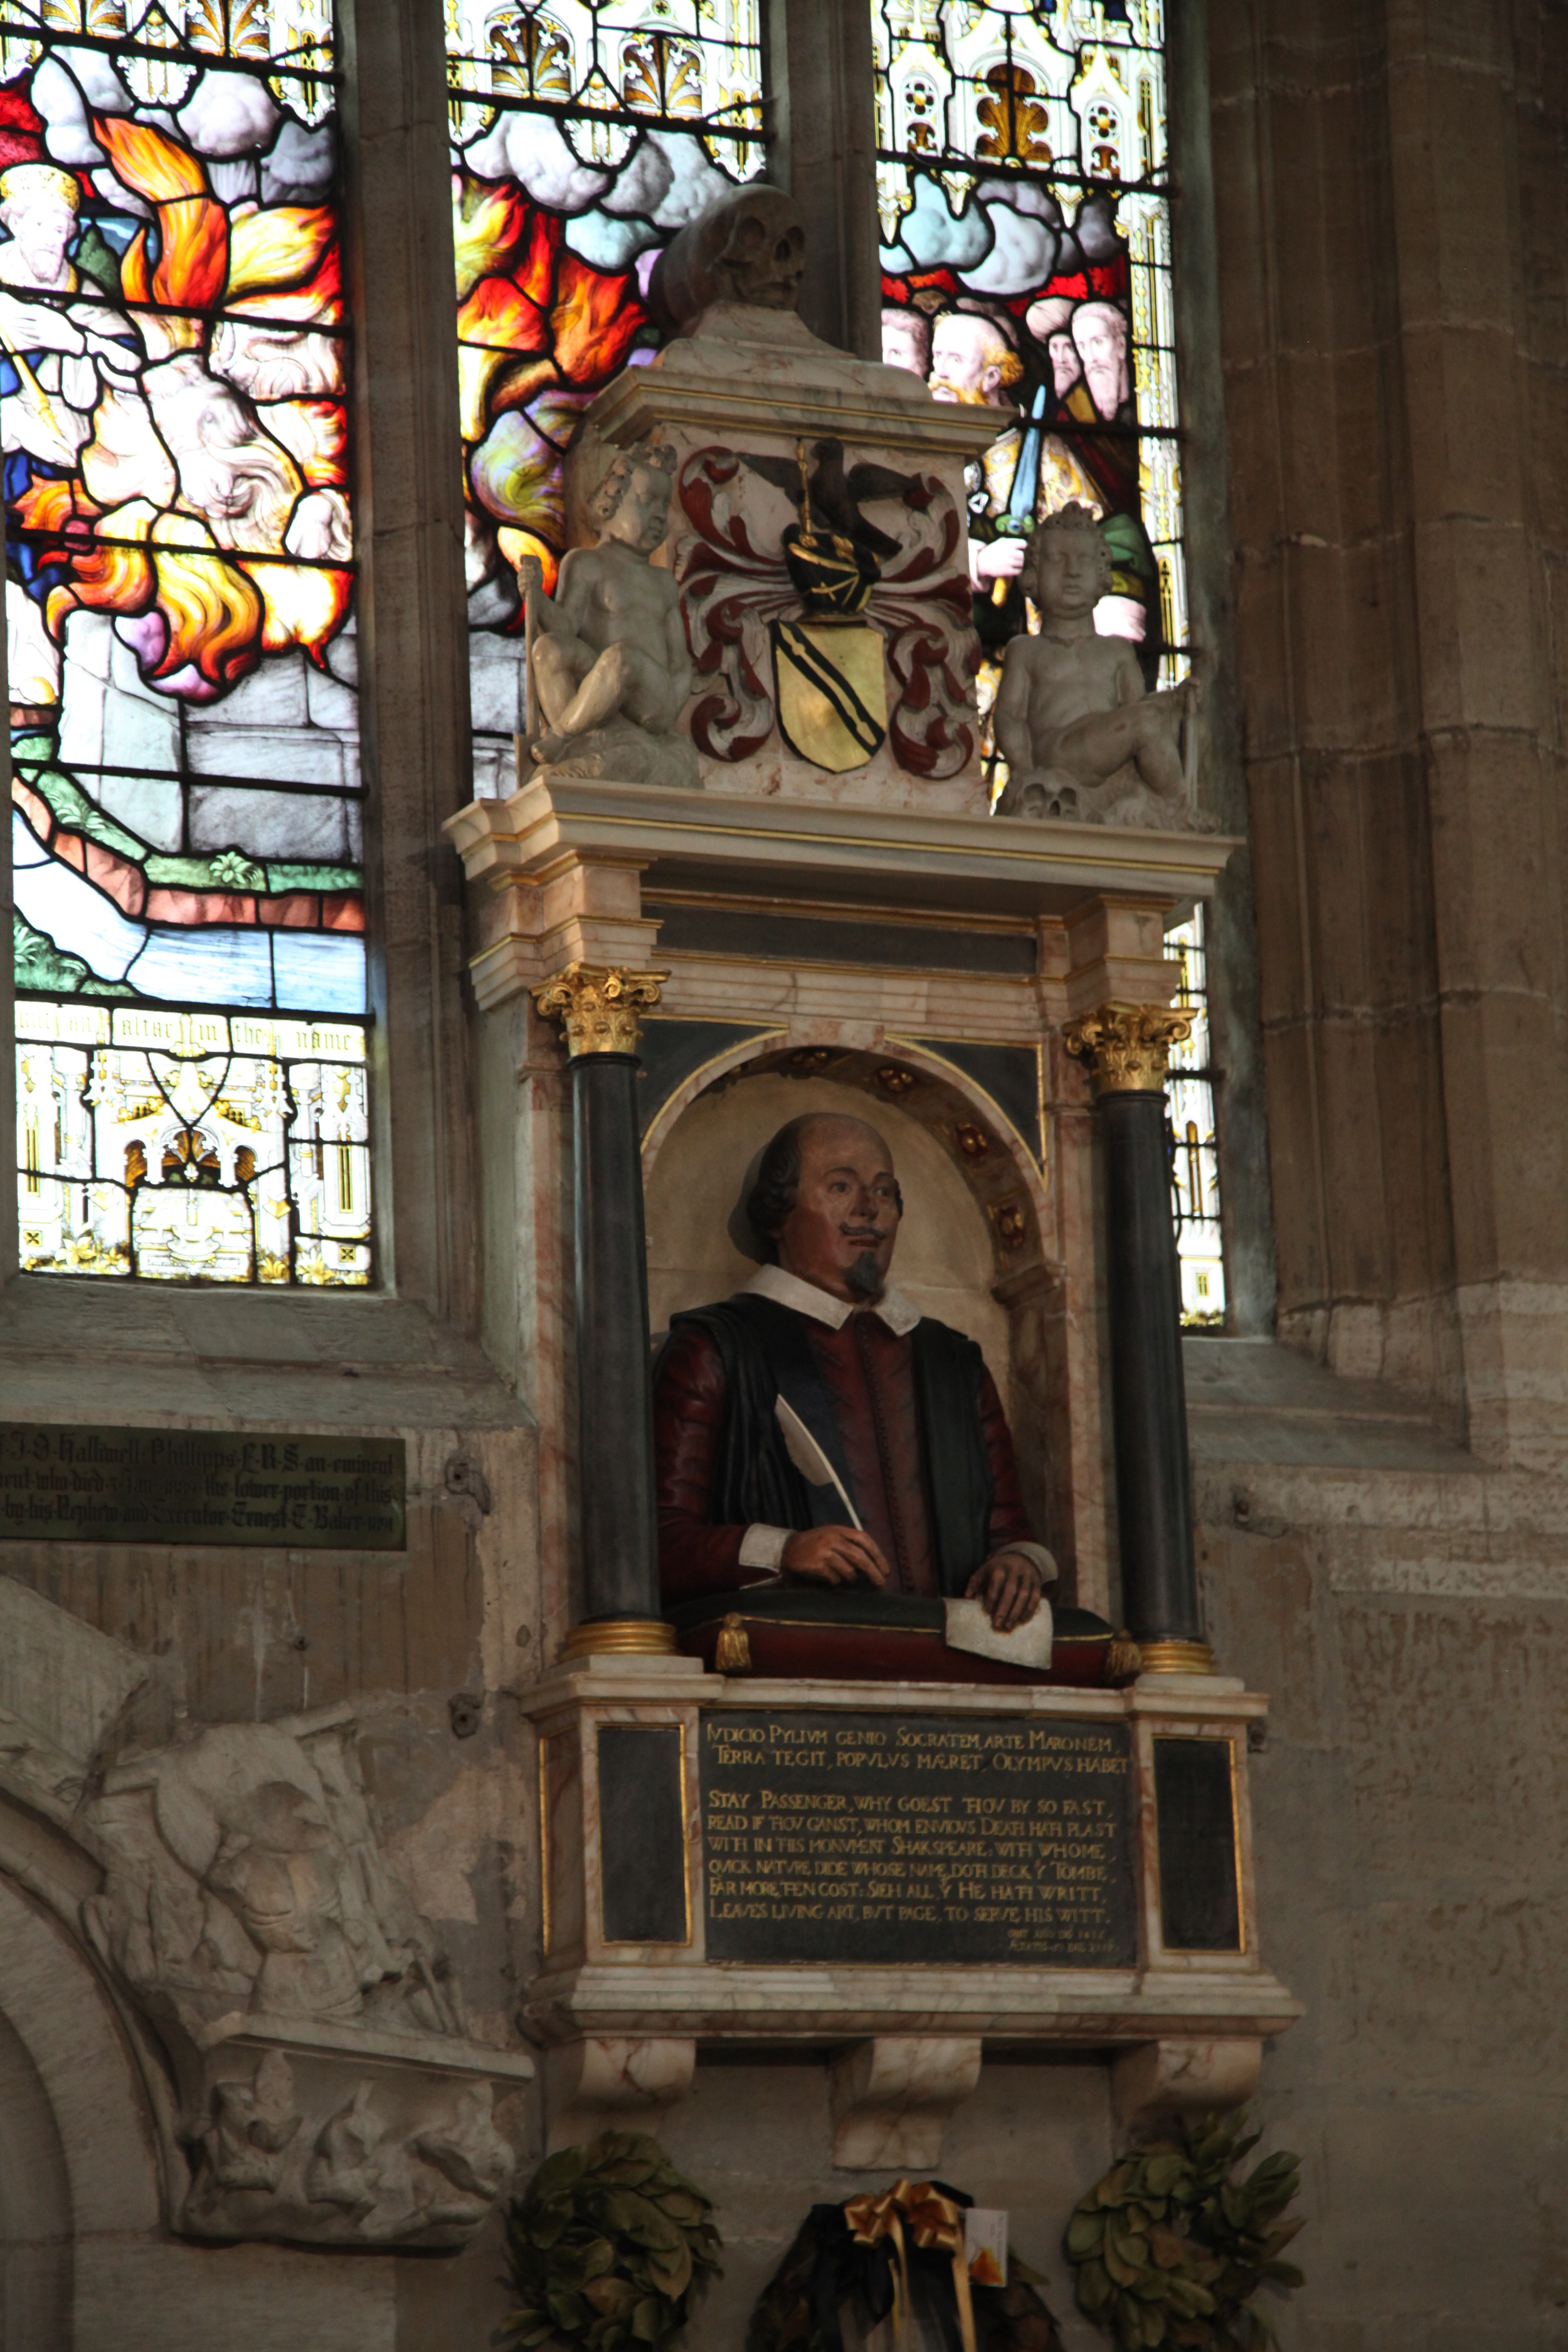 Shakespeare's tomb in Holy Trinity Church, Stratford-upon-Avon